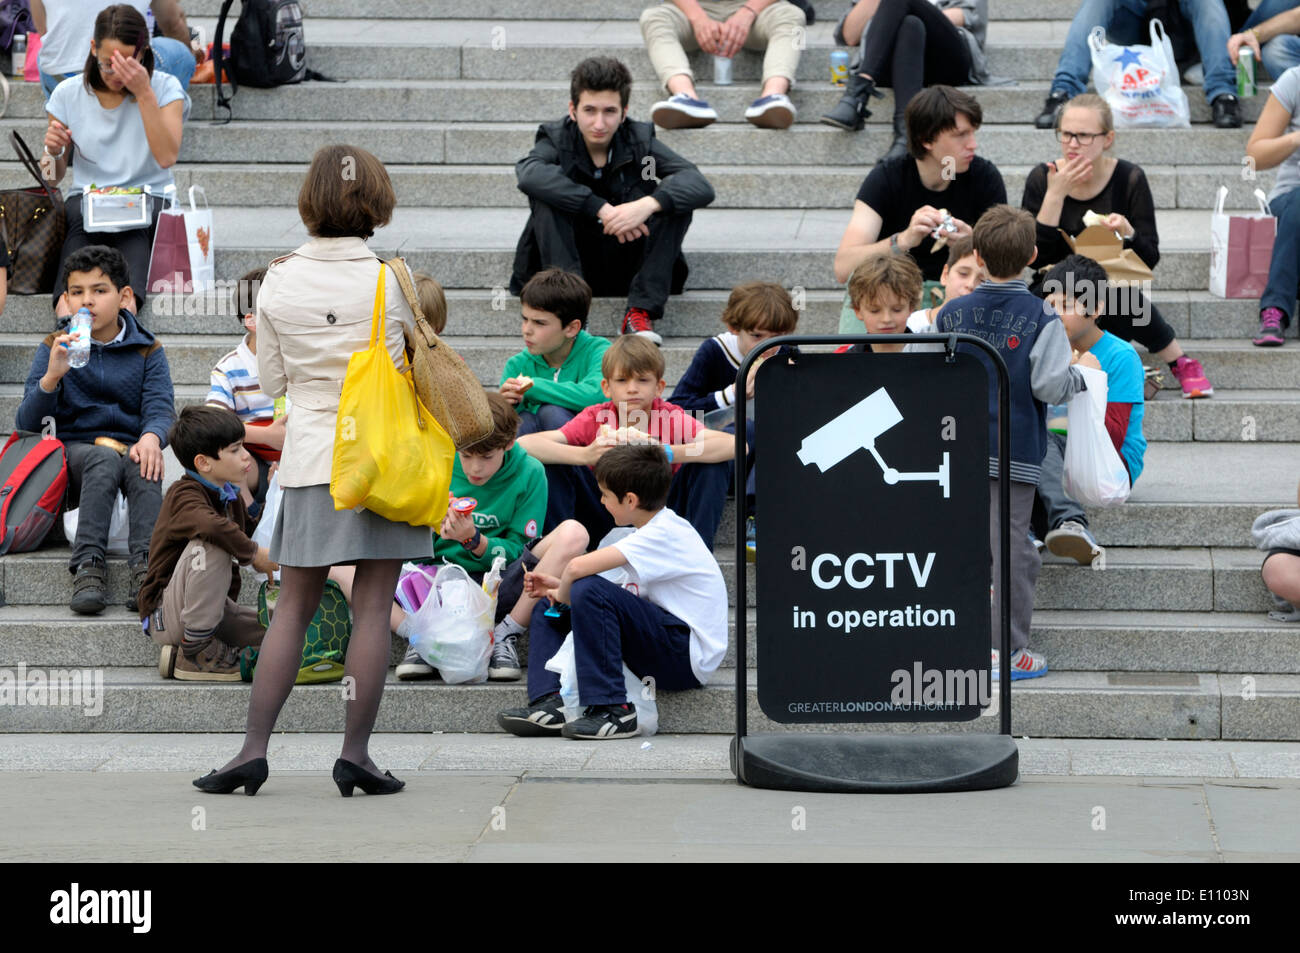 London, England, UK. People relaxing on the steps leading from Trafalgar Square to the National gallery - Stock Image